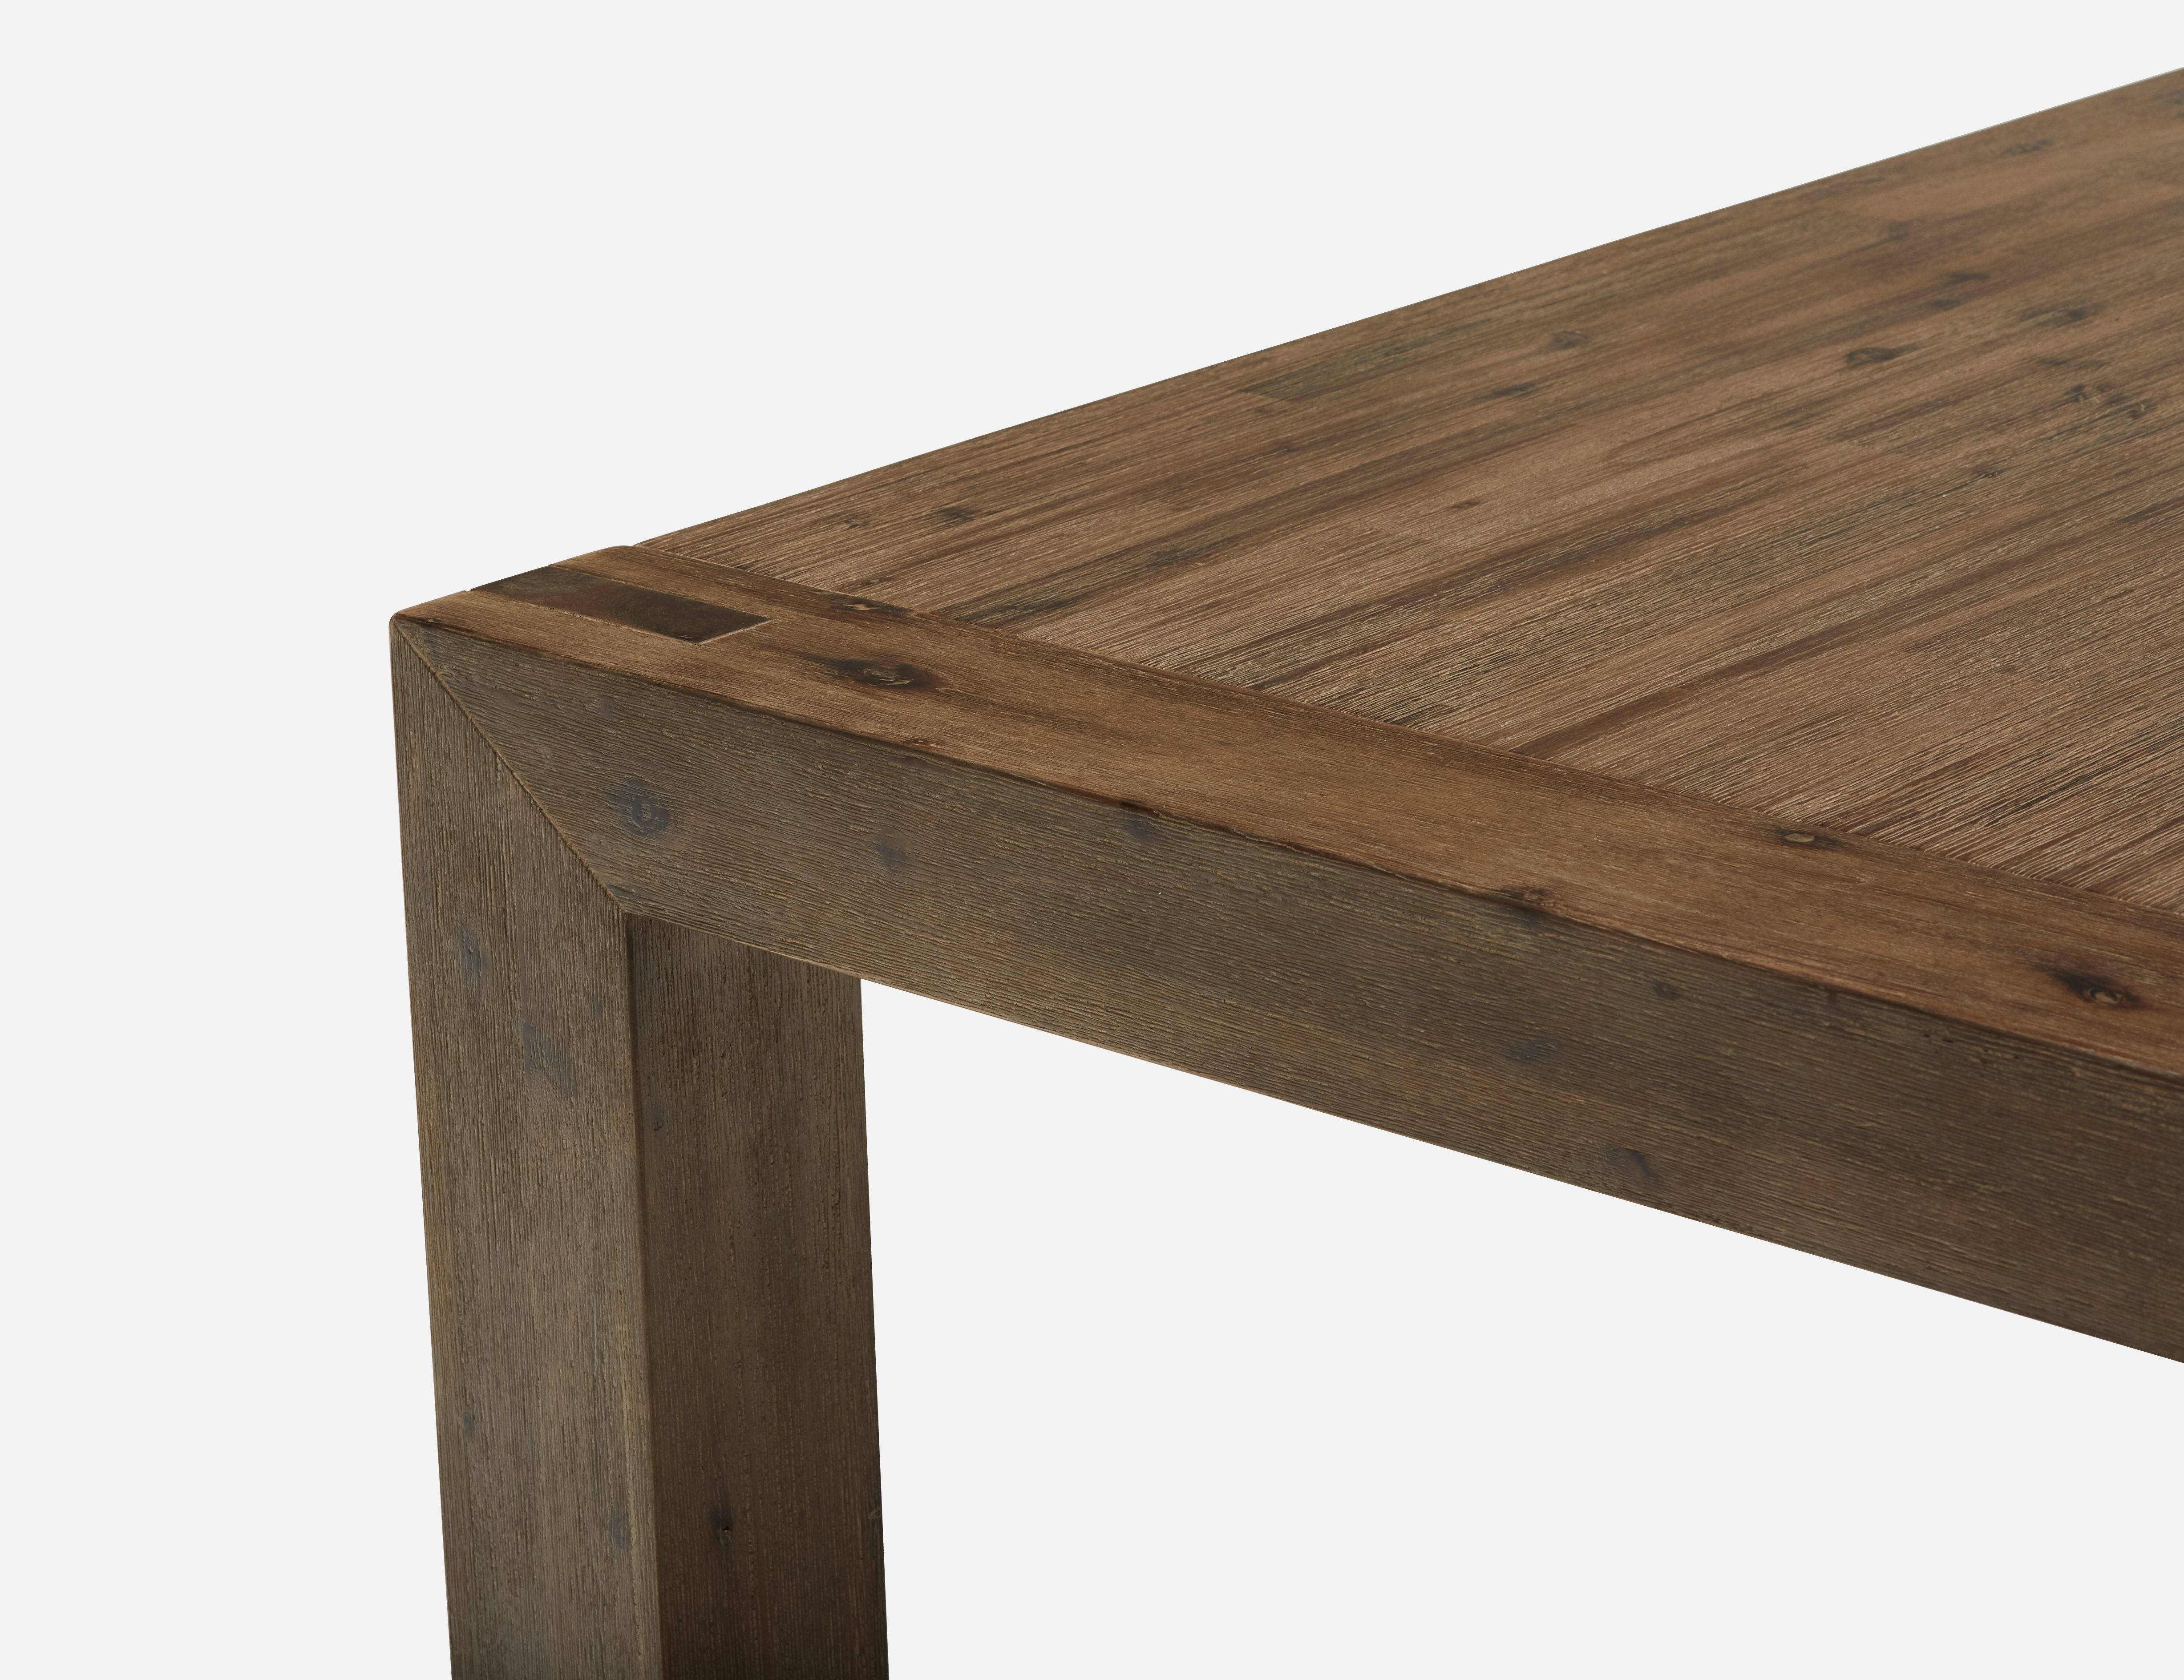 Magnificent Hamburg Grey Solid Acacia Wood Dining Table 180Cm Struc Dailytribune Chair Design For Home Dailytribuneorg